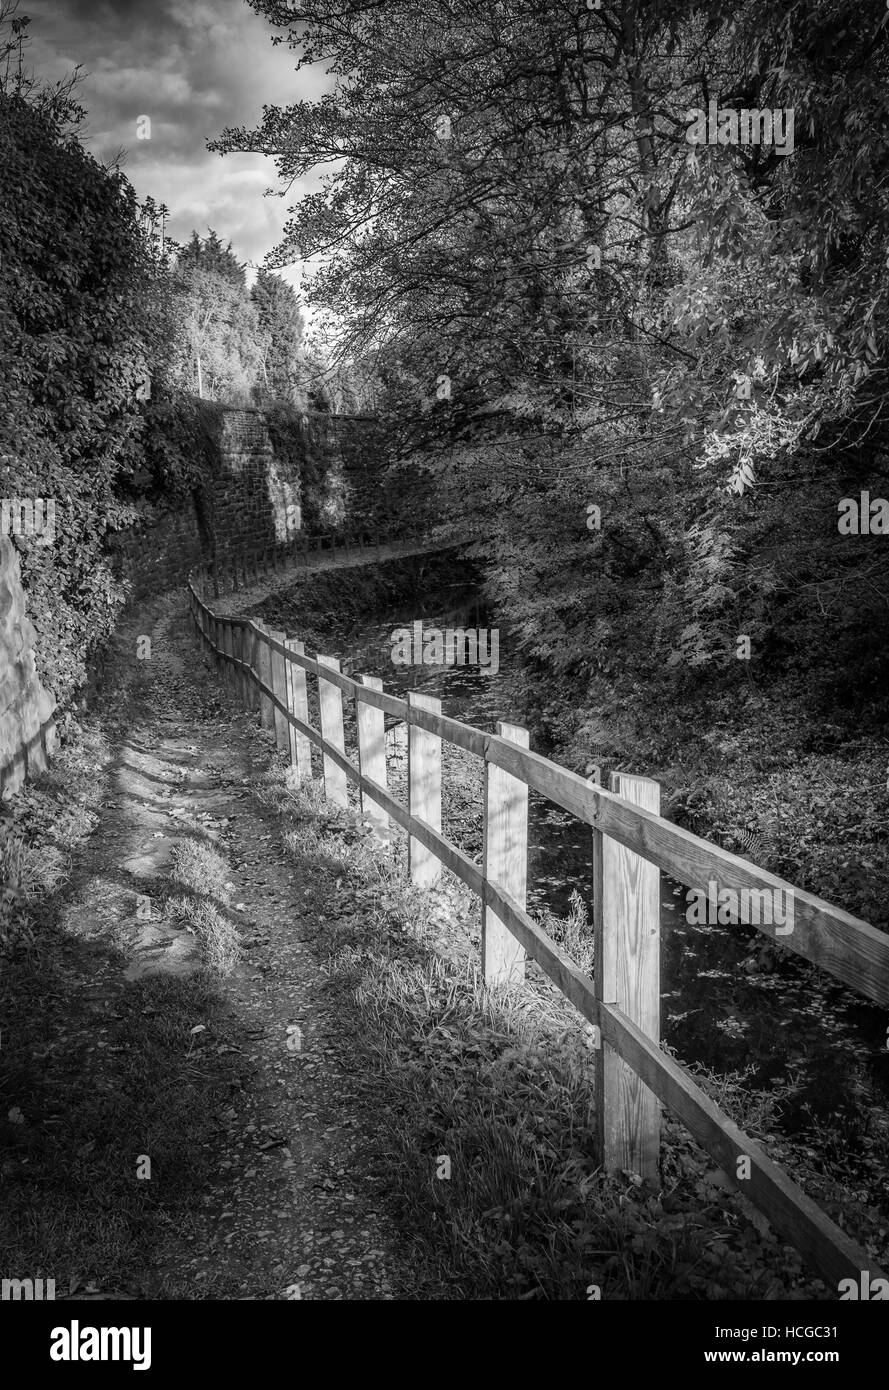 The Chesterfield Canal at Kiveton, Sheffield - Stock Image